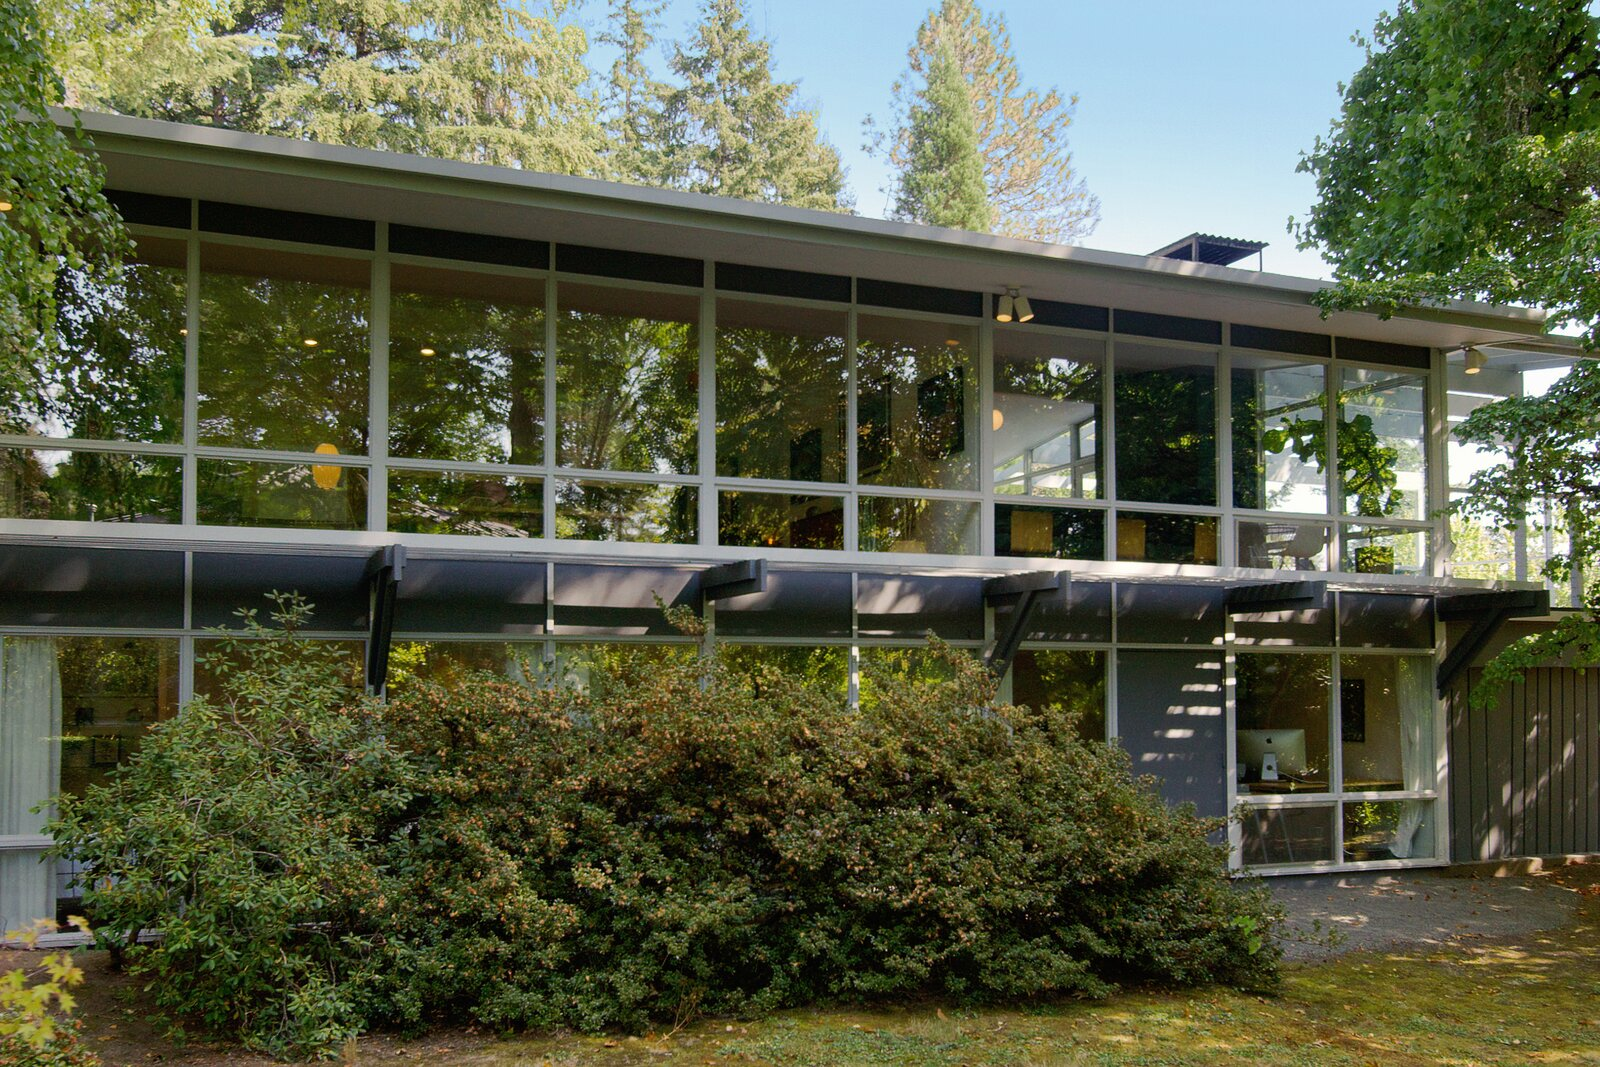 Exterior of Smith-Gerst Residence by Frank Shell